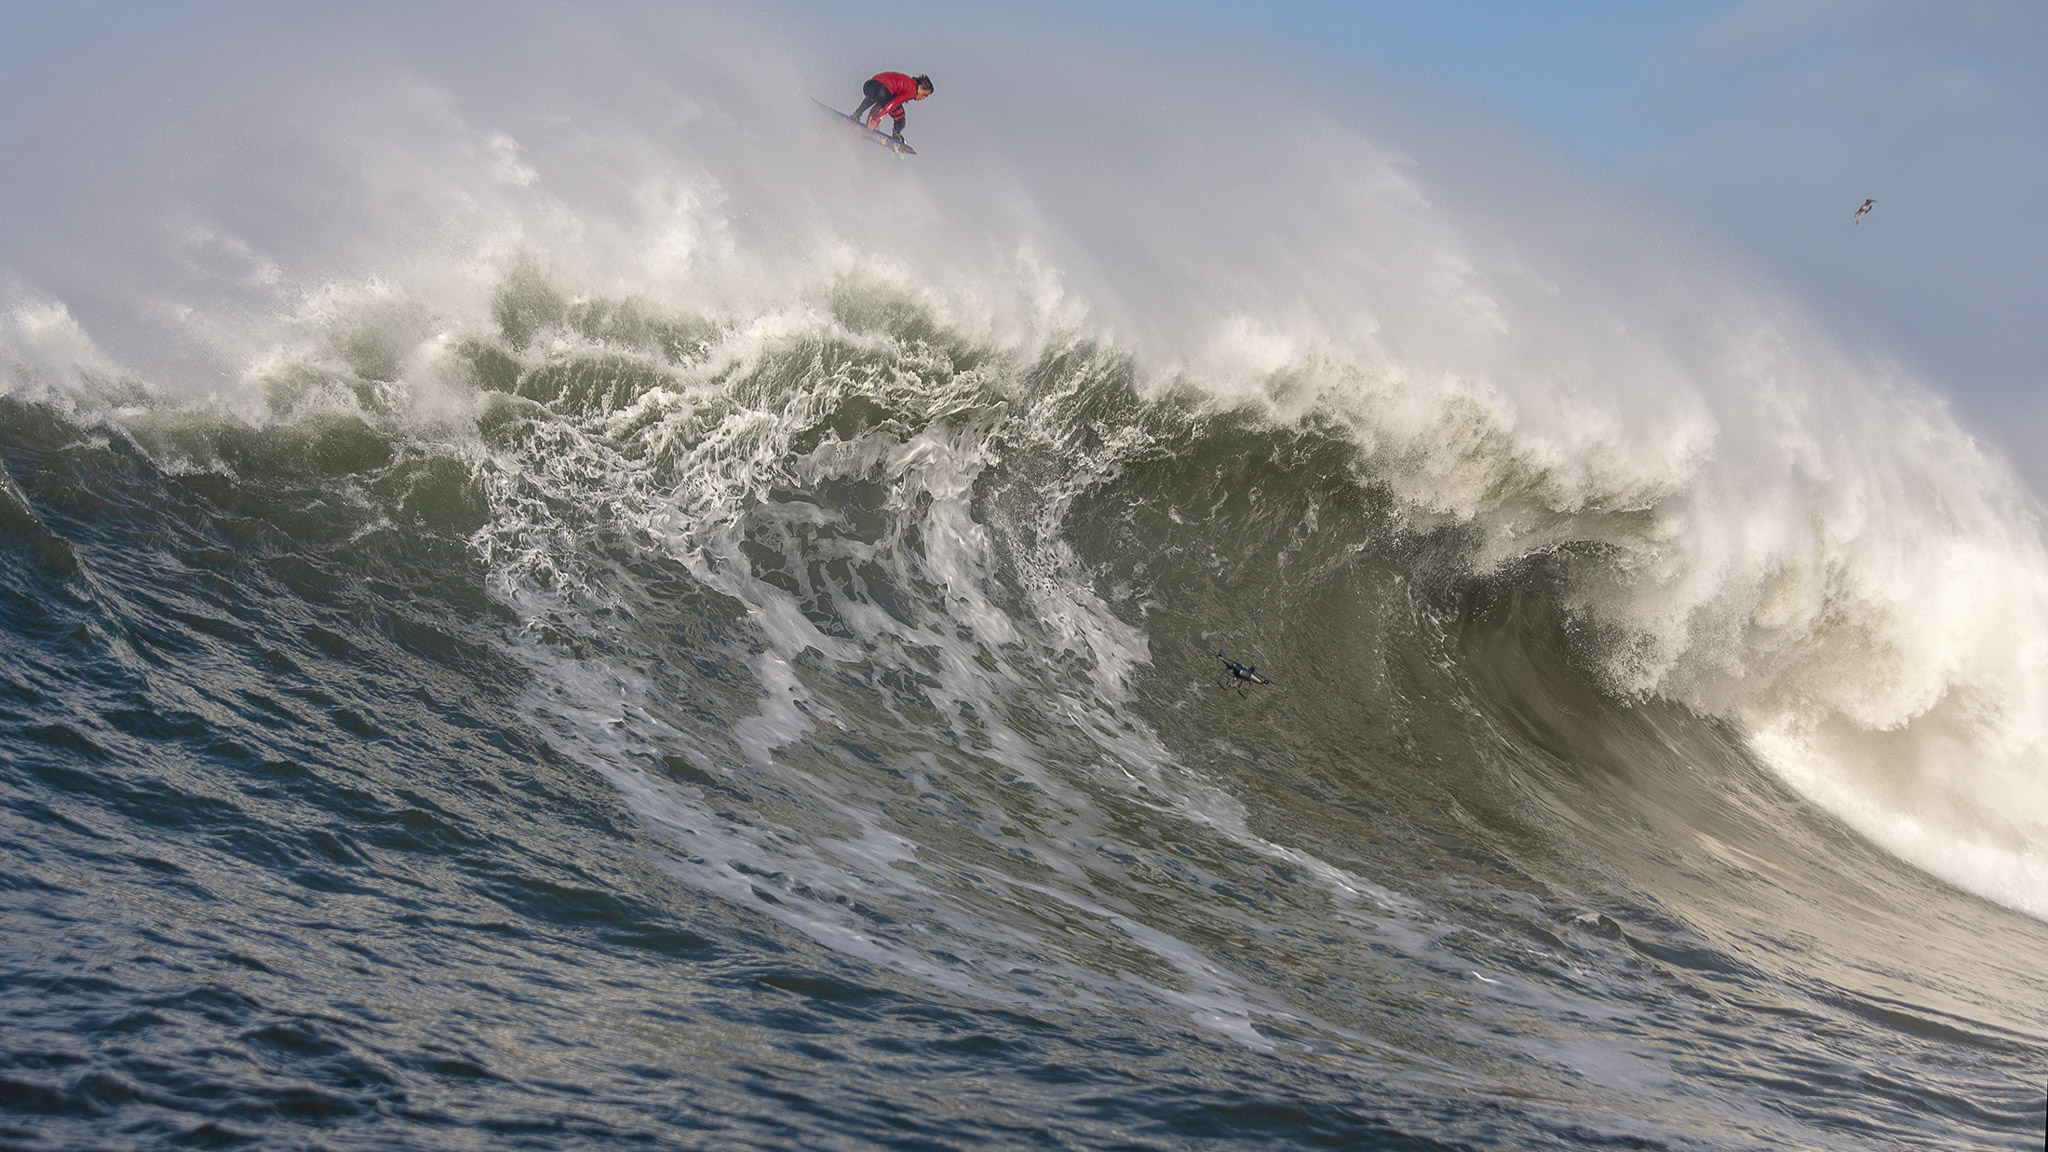 Kai Lenny, Mavericks, California